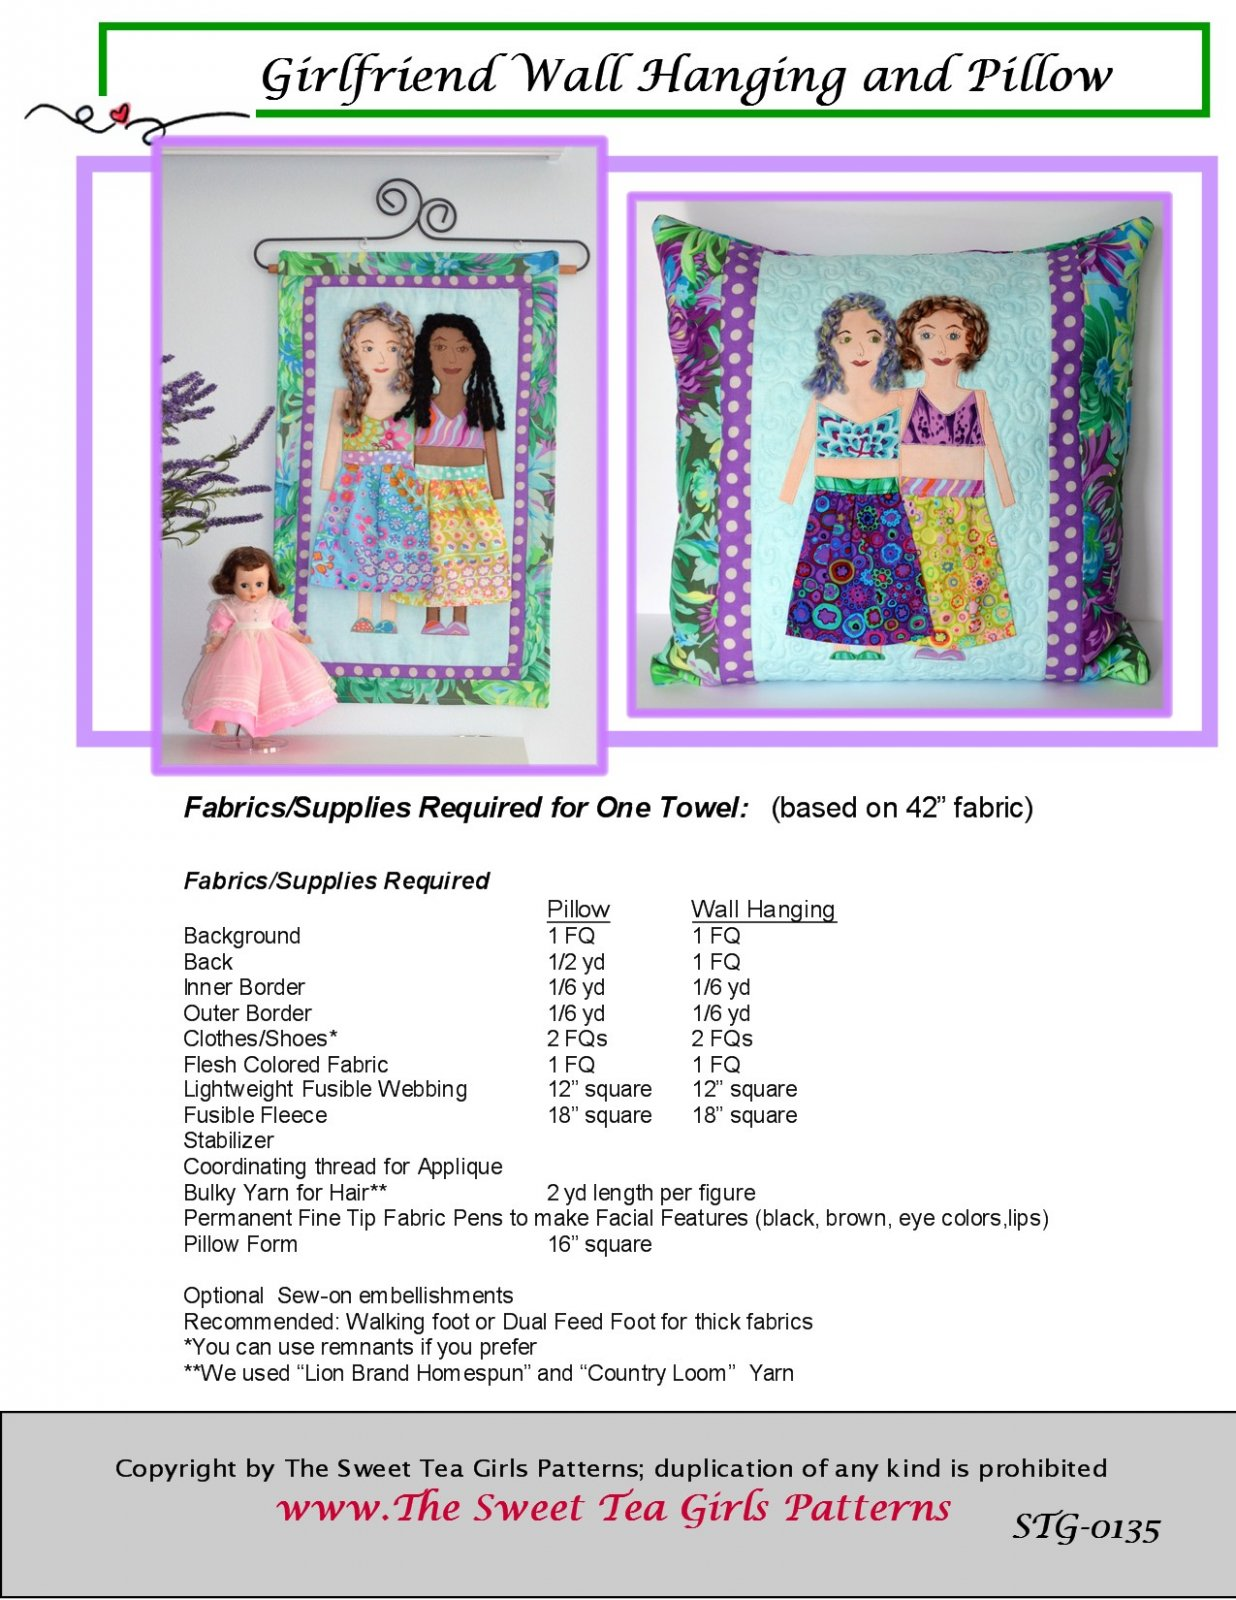 Girlfriend Wall Hanging and Pillow - Downloadable PDF